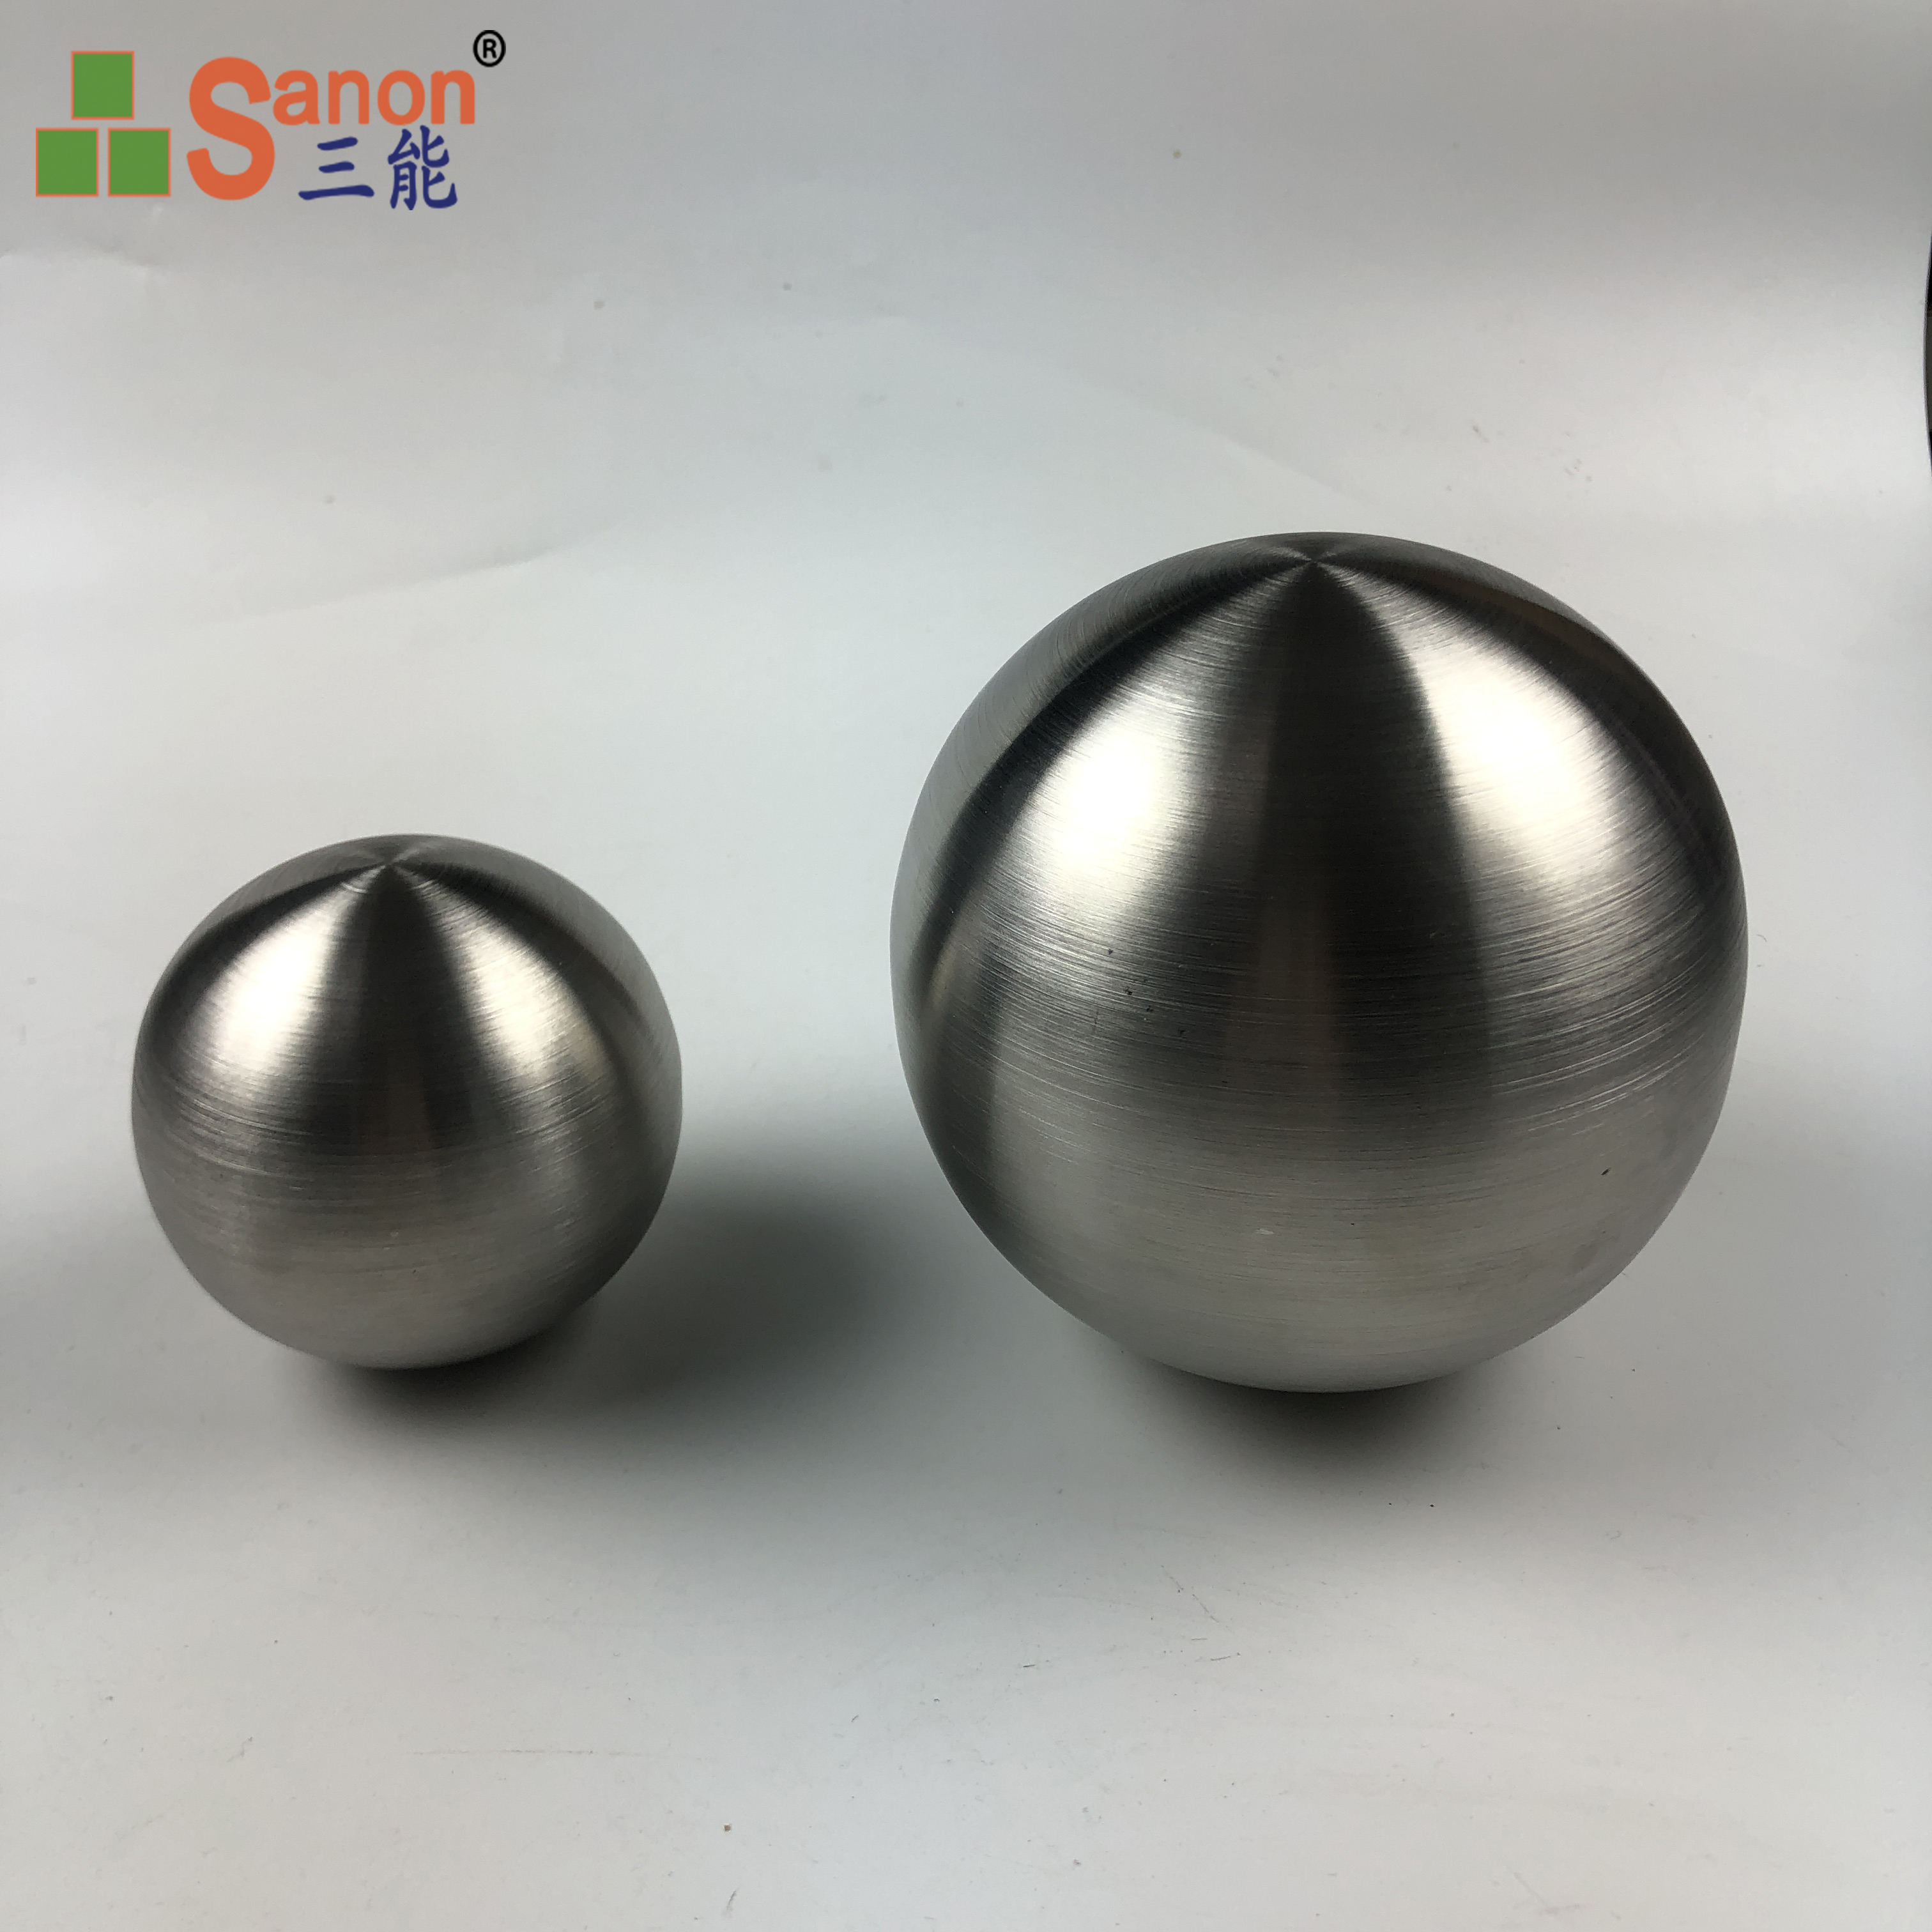 "SS316 Stainless Steel Bearing Ball G100 20 pcs - 0.3125/"" 5//16/"" Inch 7.938mm"